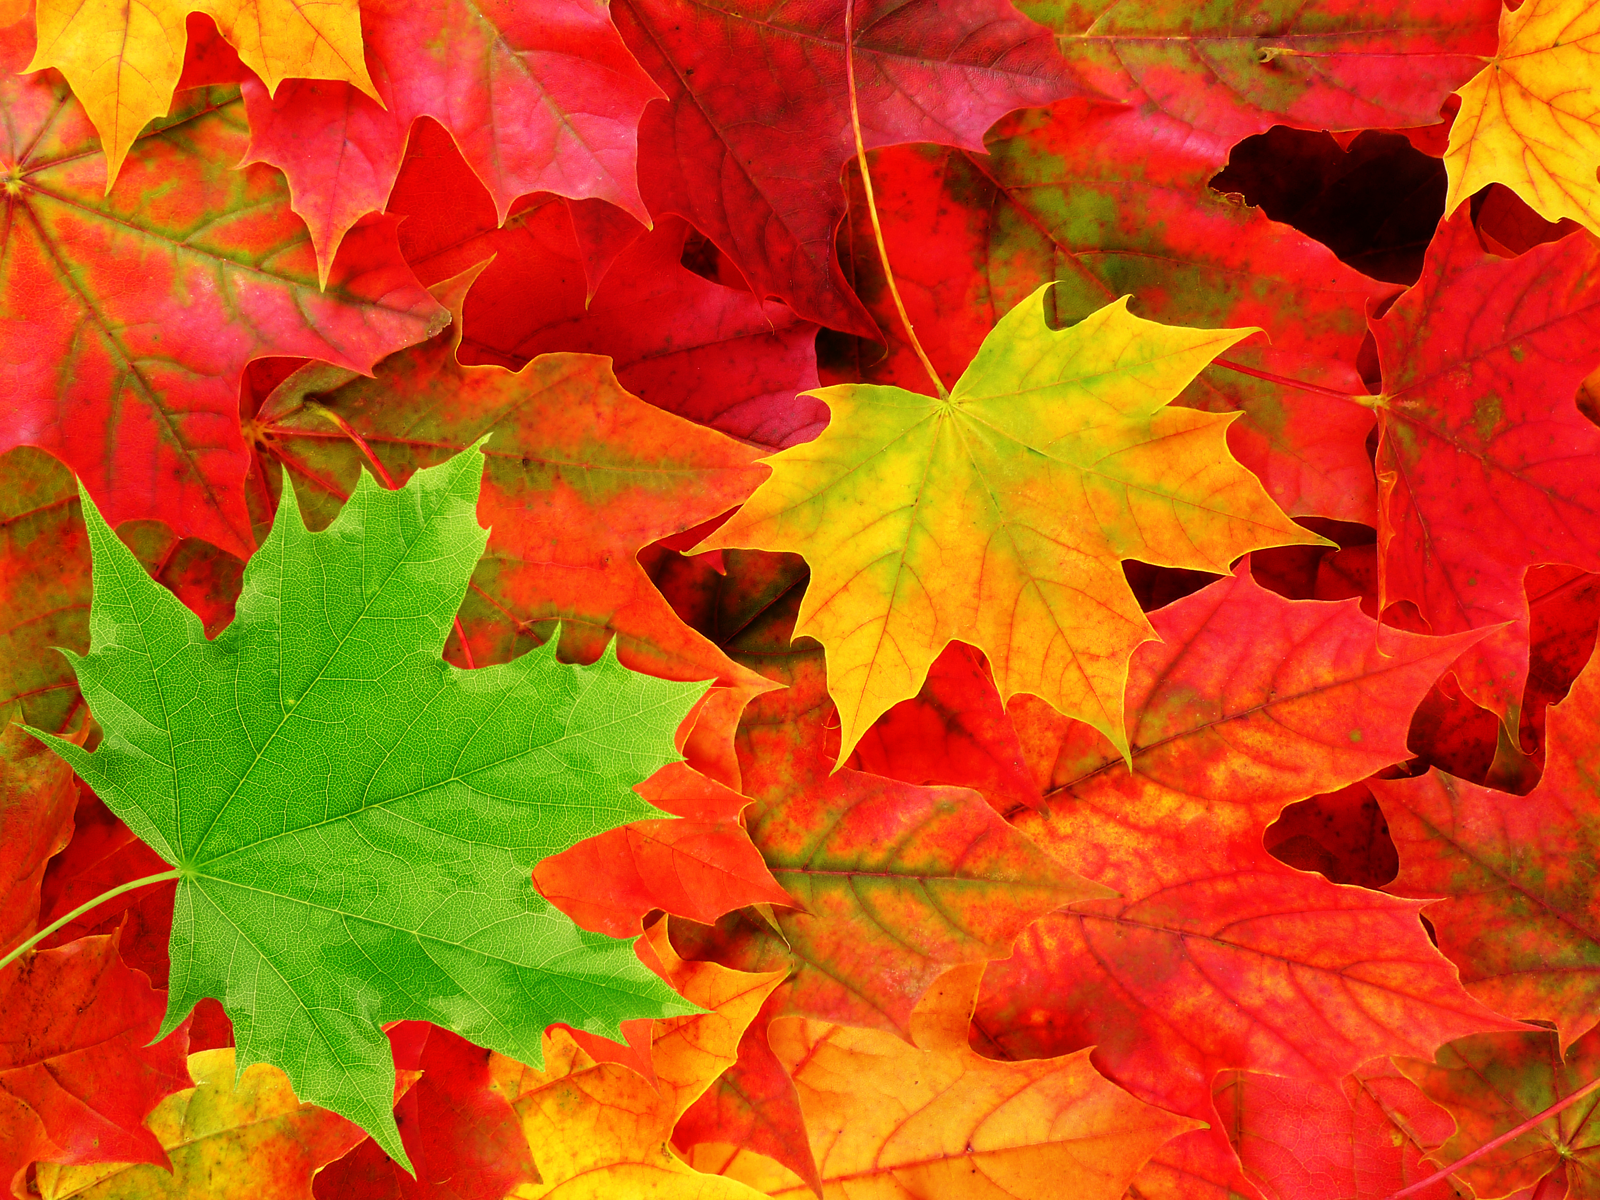 FXW.56 Gallery: Autumn Leaves, 3668.11 Kb